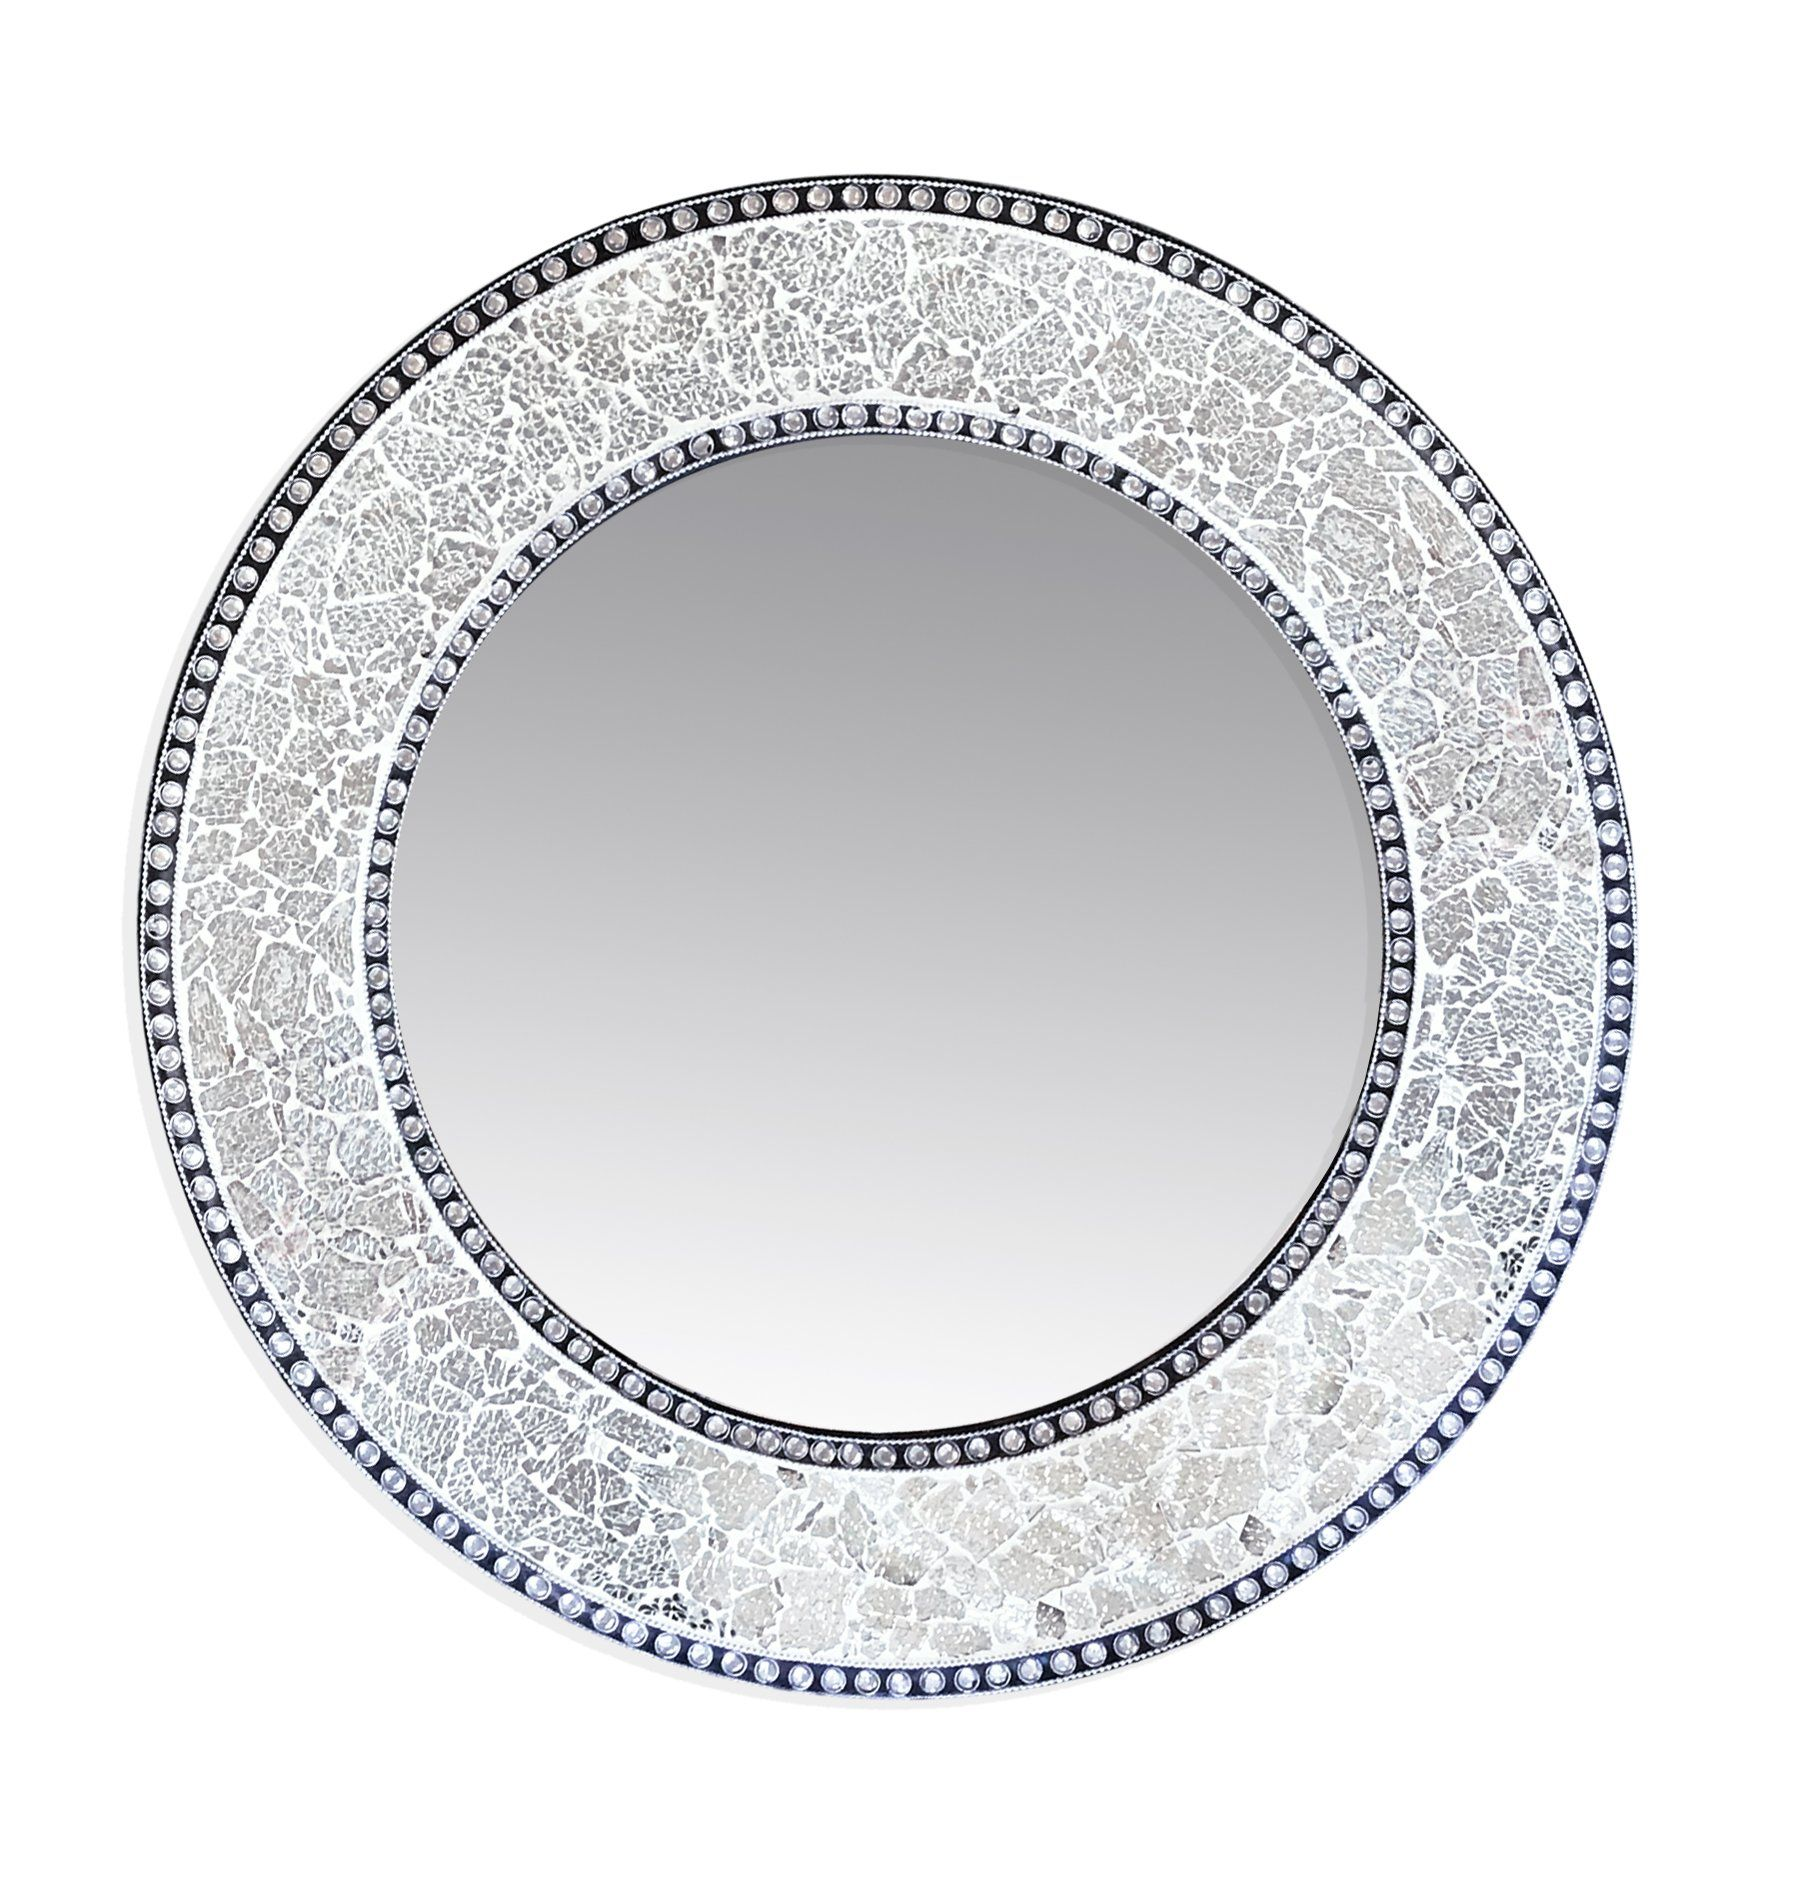 Decorshore 24 Silver Round Wall Mirror Crackled Glass Mosaic Decorative Design By Want To Know More Click On Th Round Wall Mirror Mirror Wall Decor Mirror